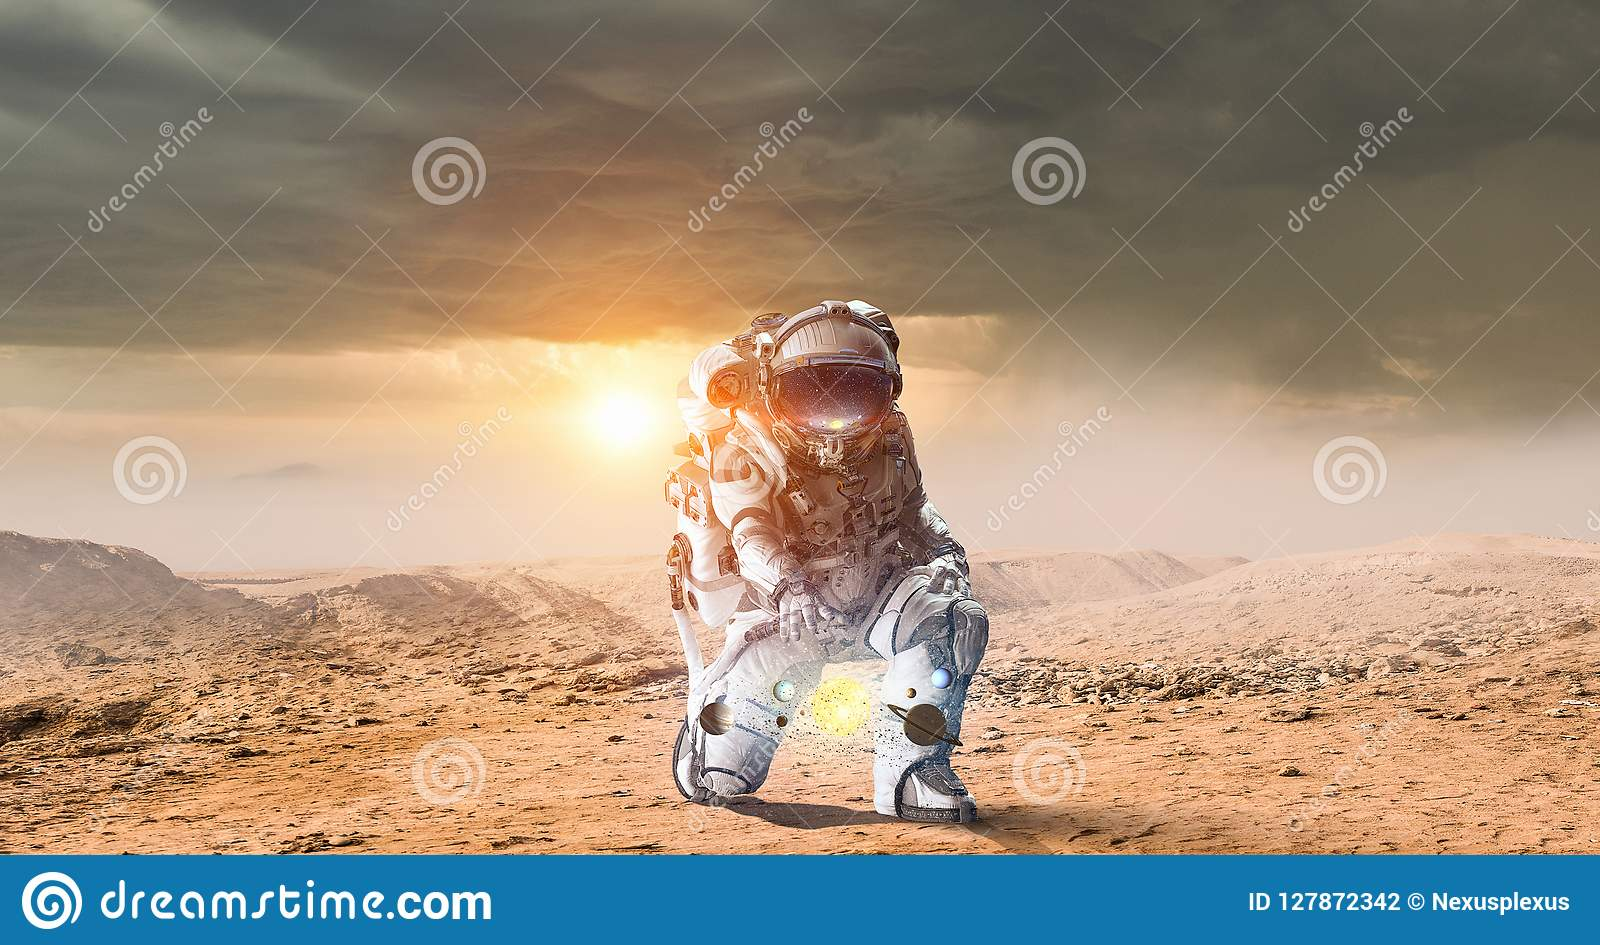 There Is Life On Other Planets. Mixed Media Stock Photo ...